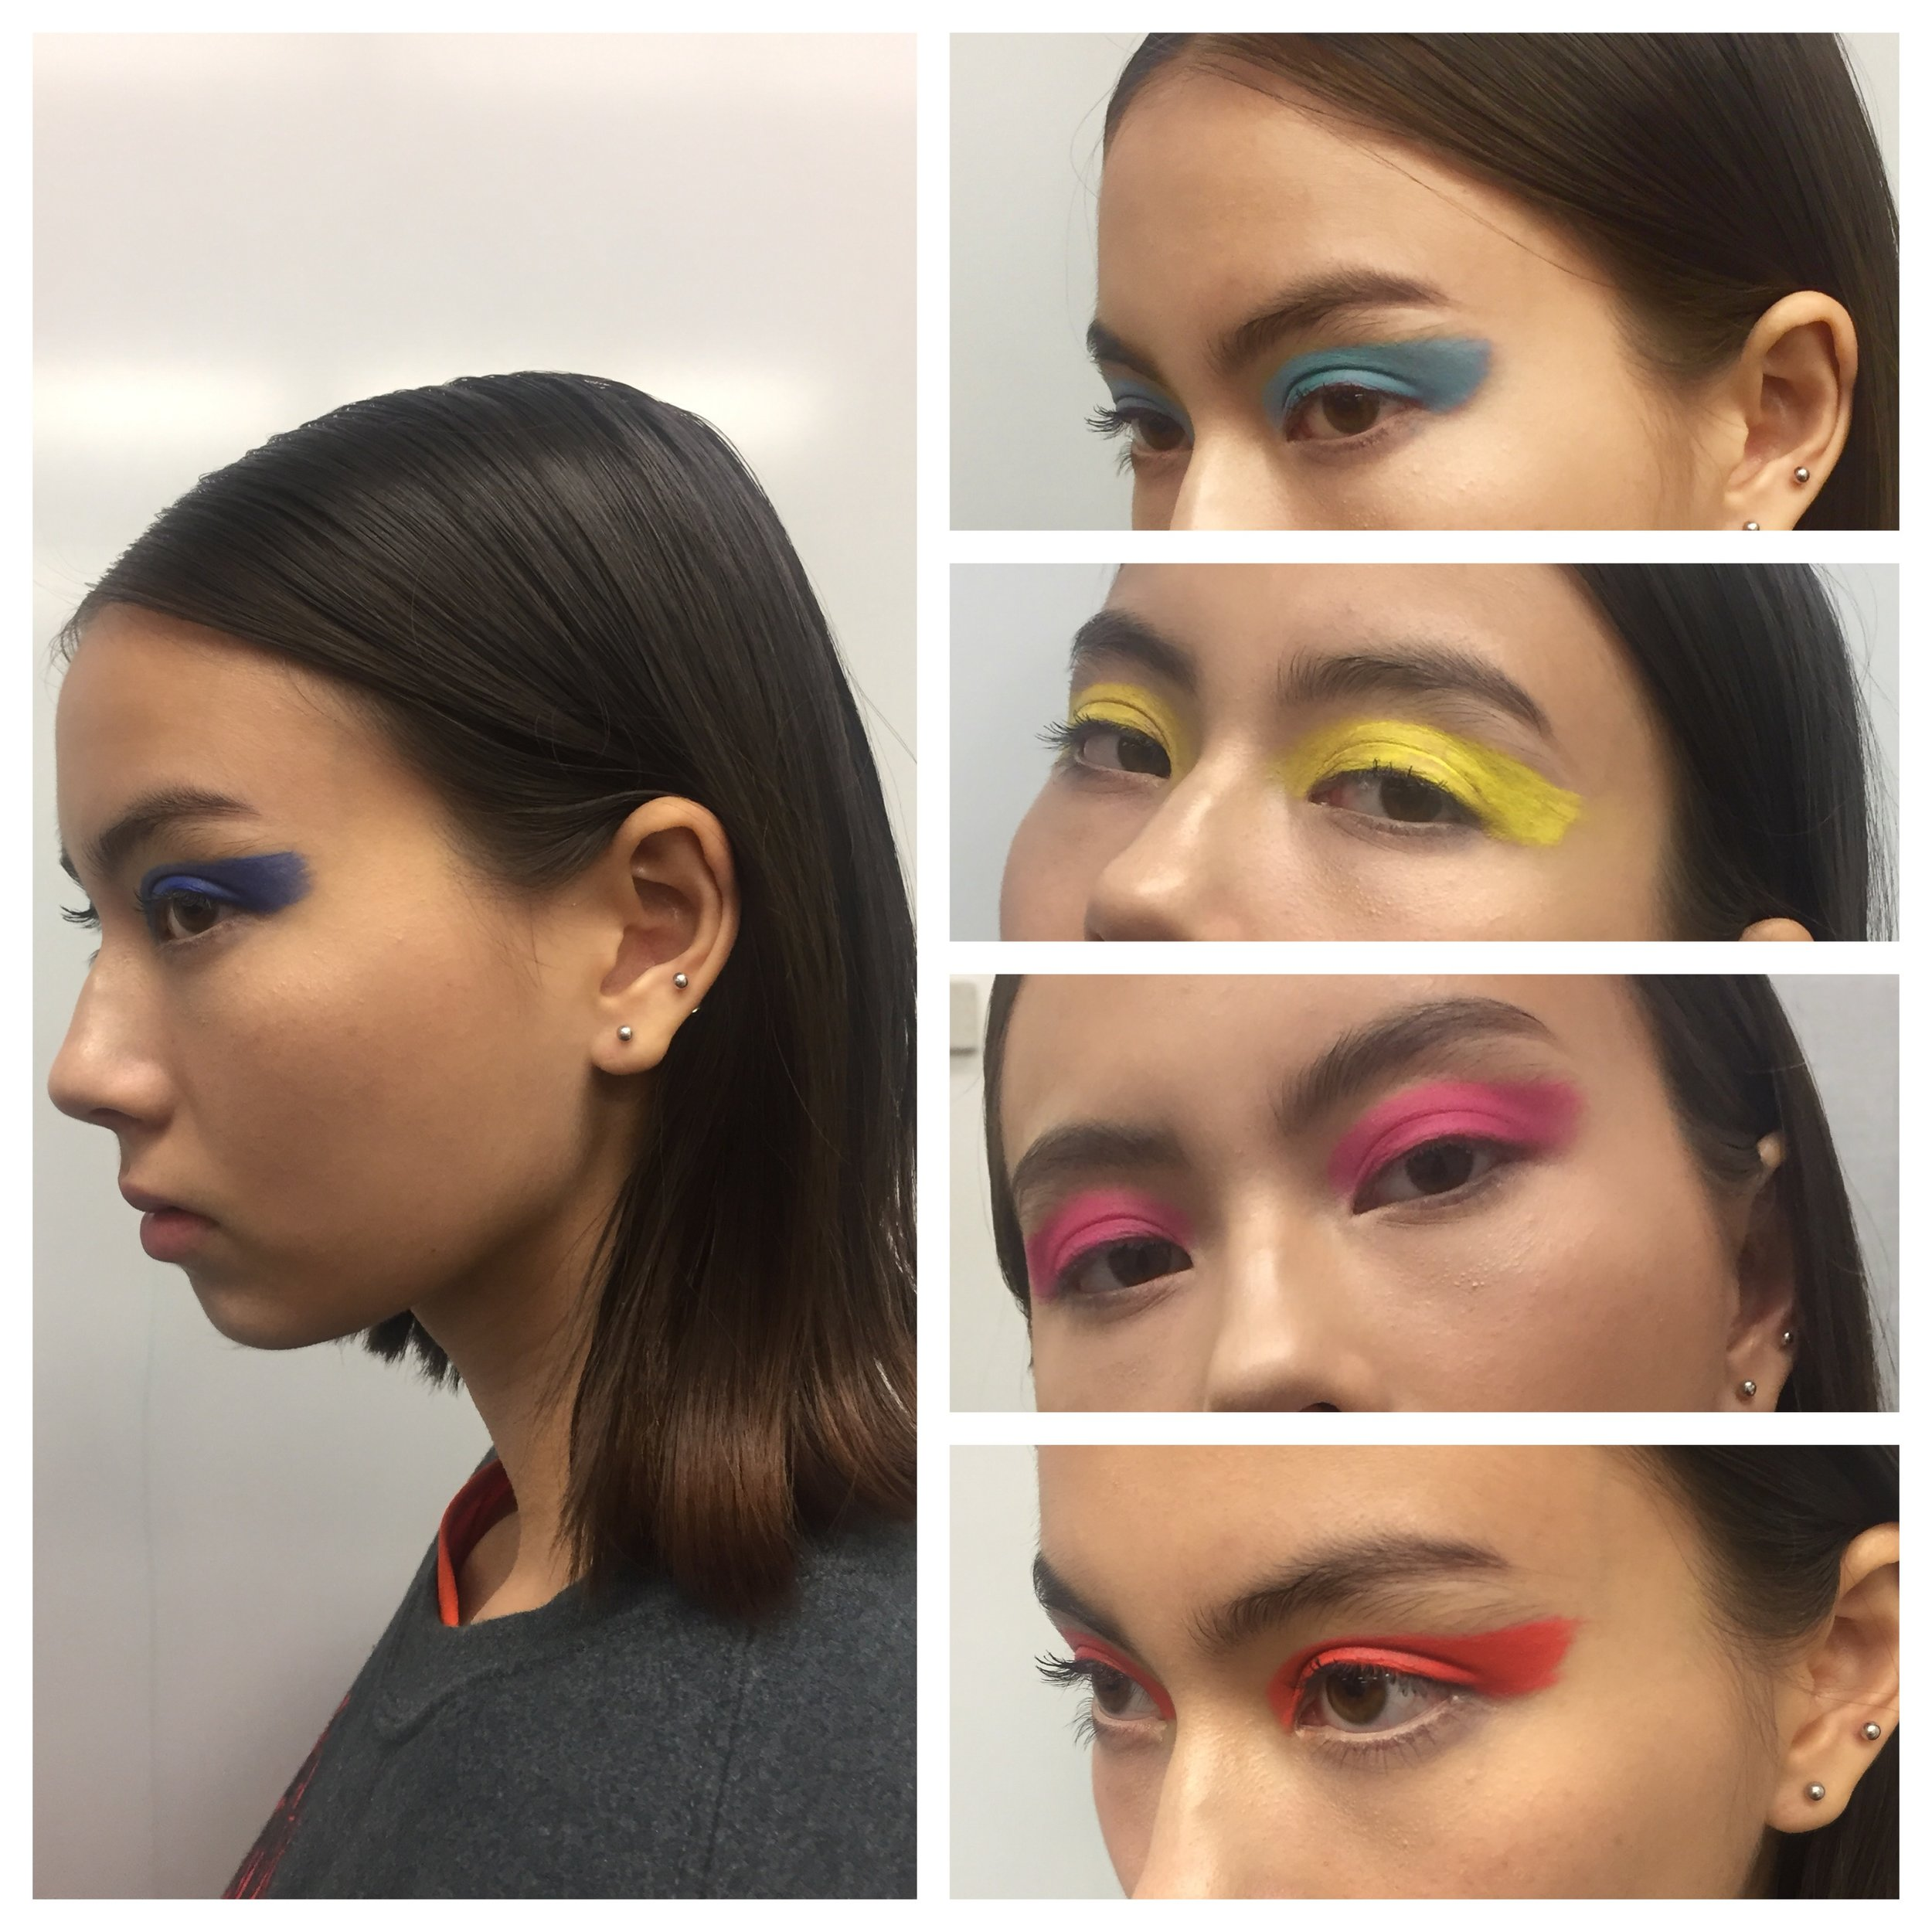 Here are some close up #BTS photos of Lala's colorful eye makeup I got to do for the editorial. So much fun!